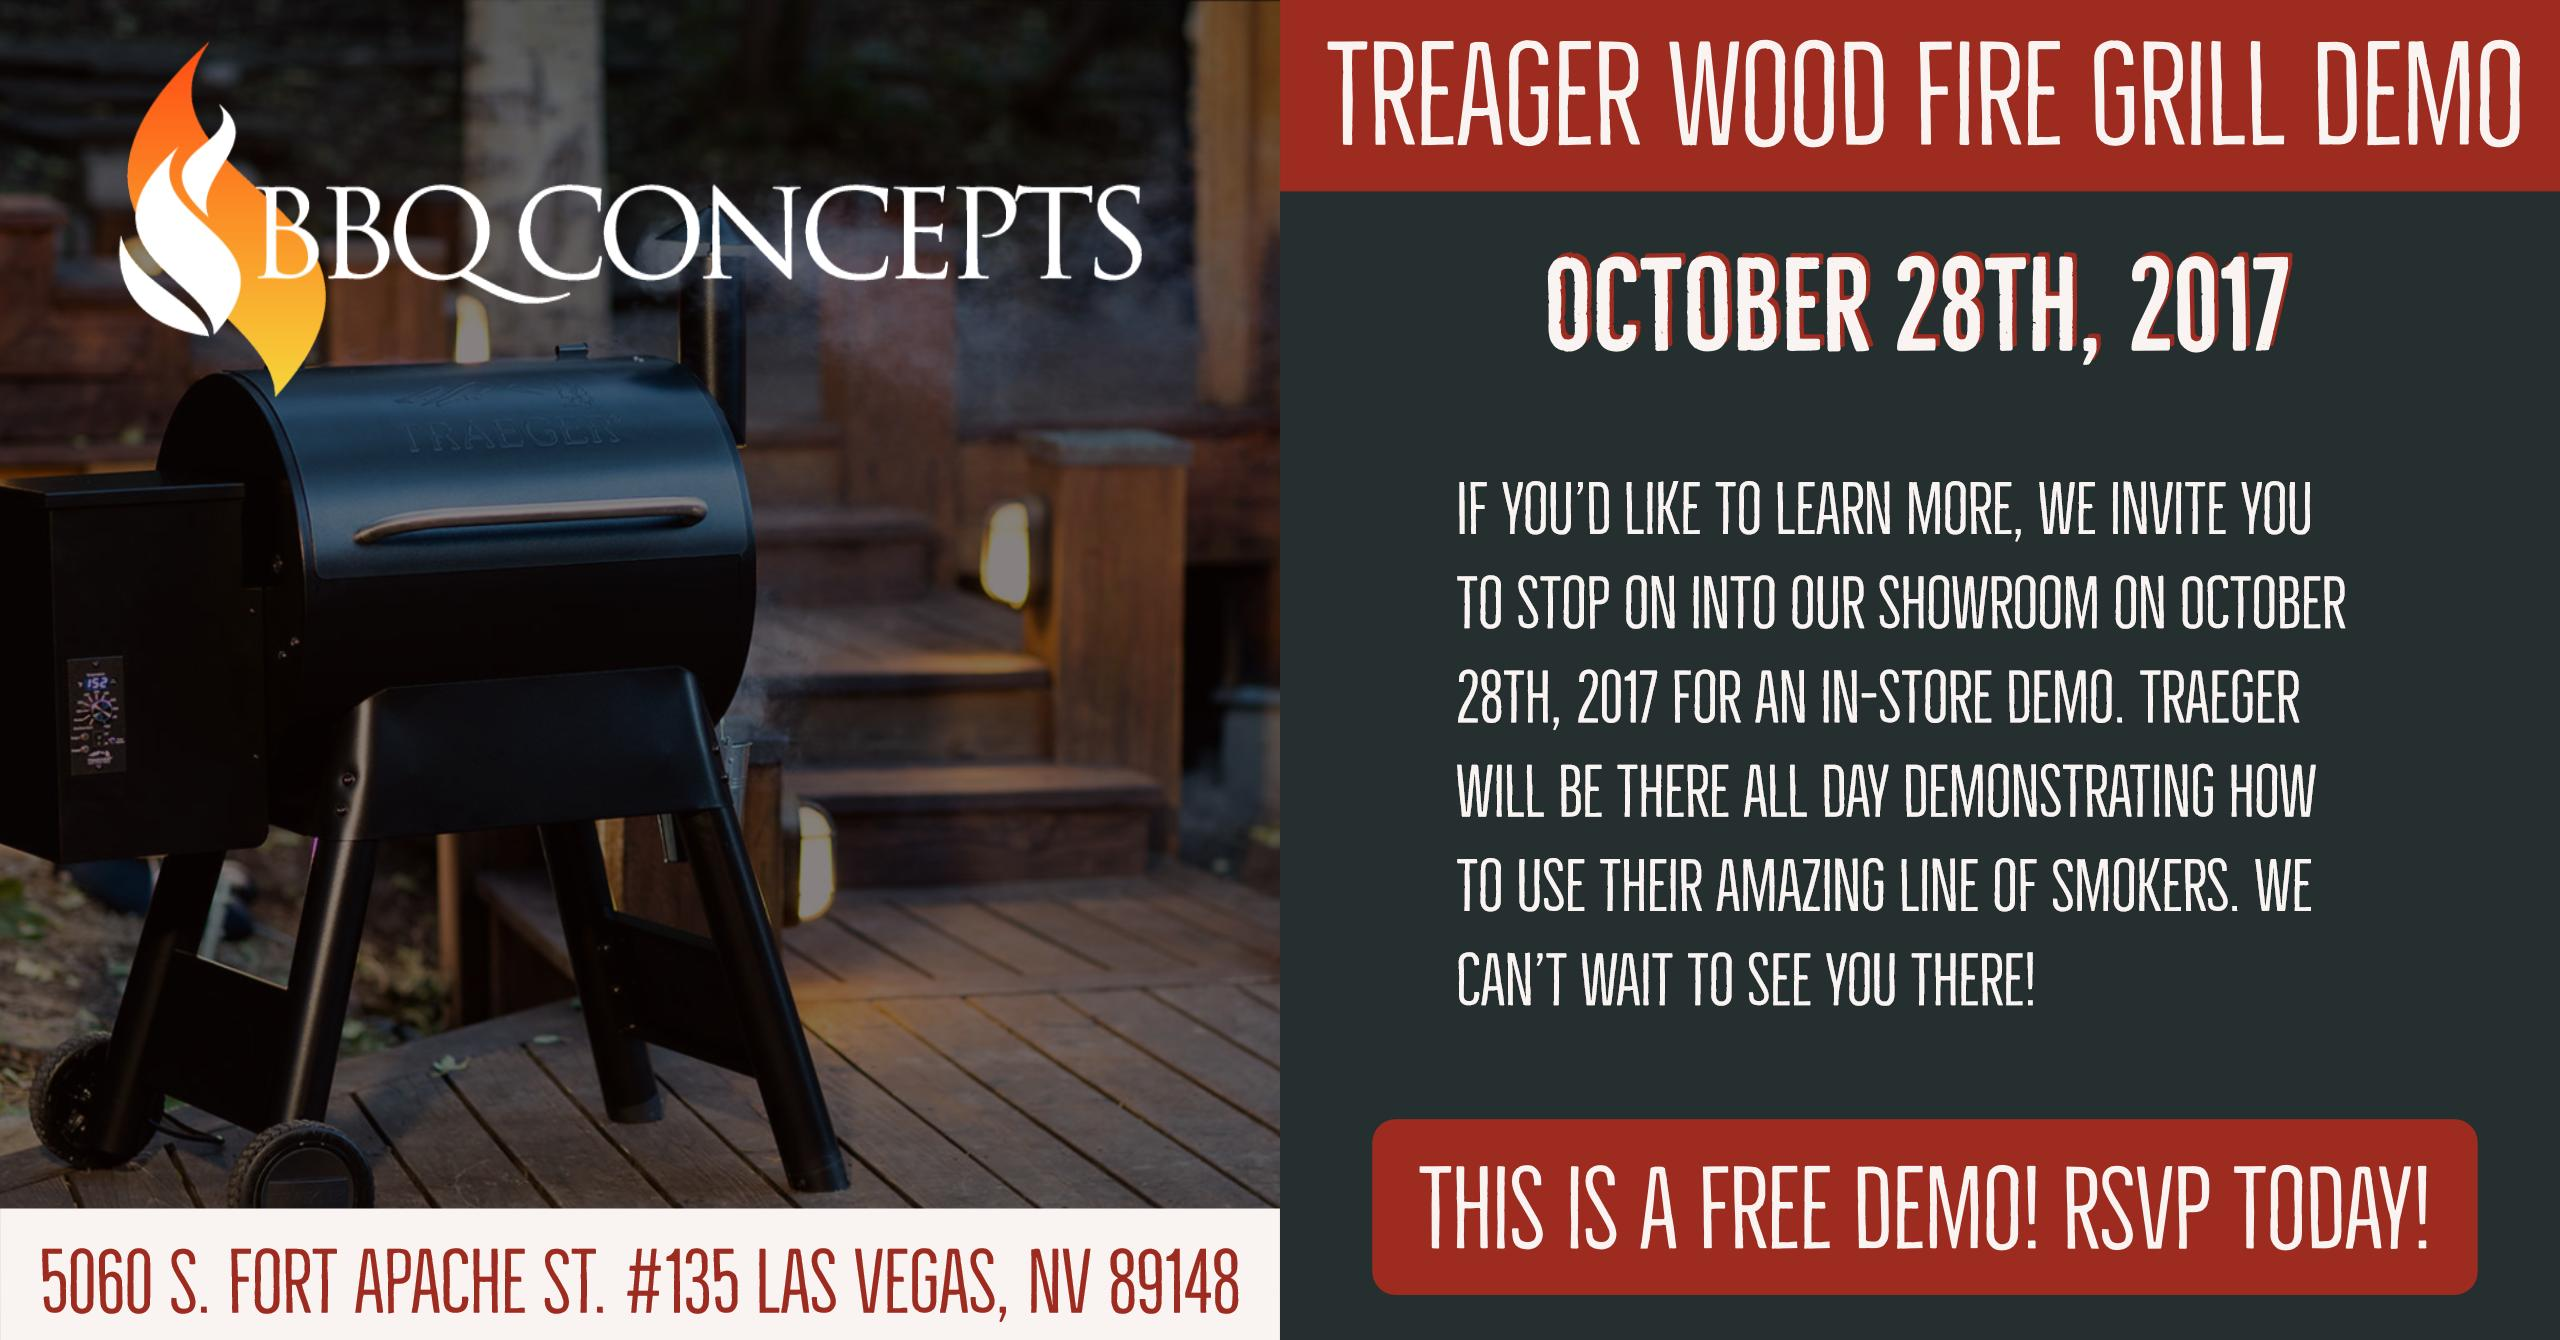 Traeger Wood Fire Grill Demonstration Day - Saturday, October 28th 2017 at BBQ Concepts of Las Vegas, Nevada